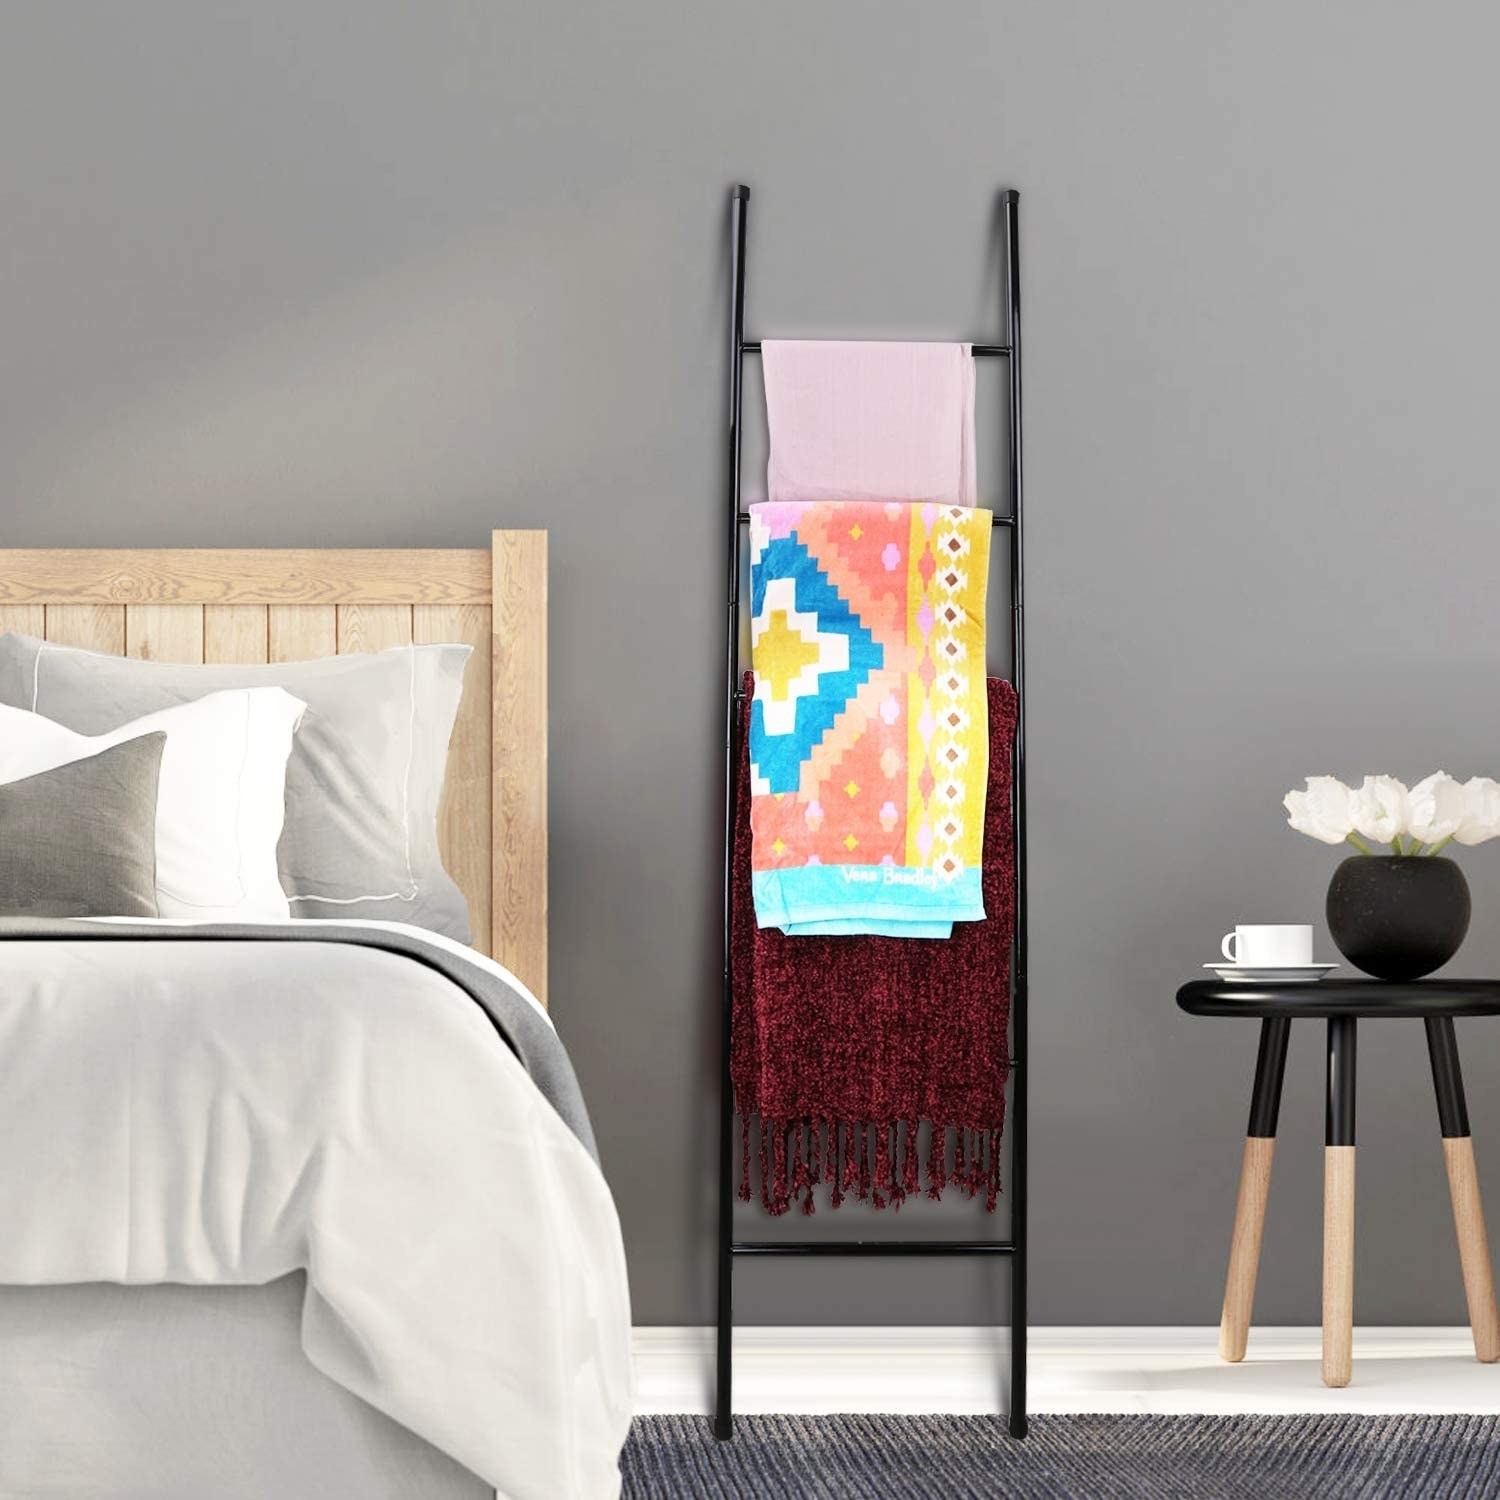 Display ladder with folded blankets and scarves next to a bed